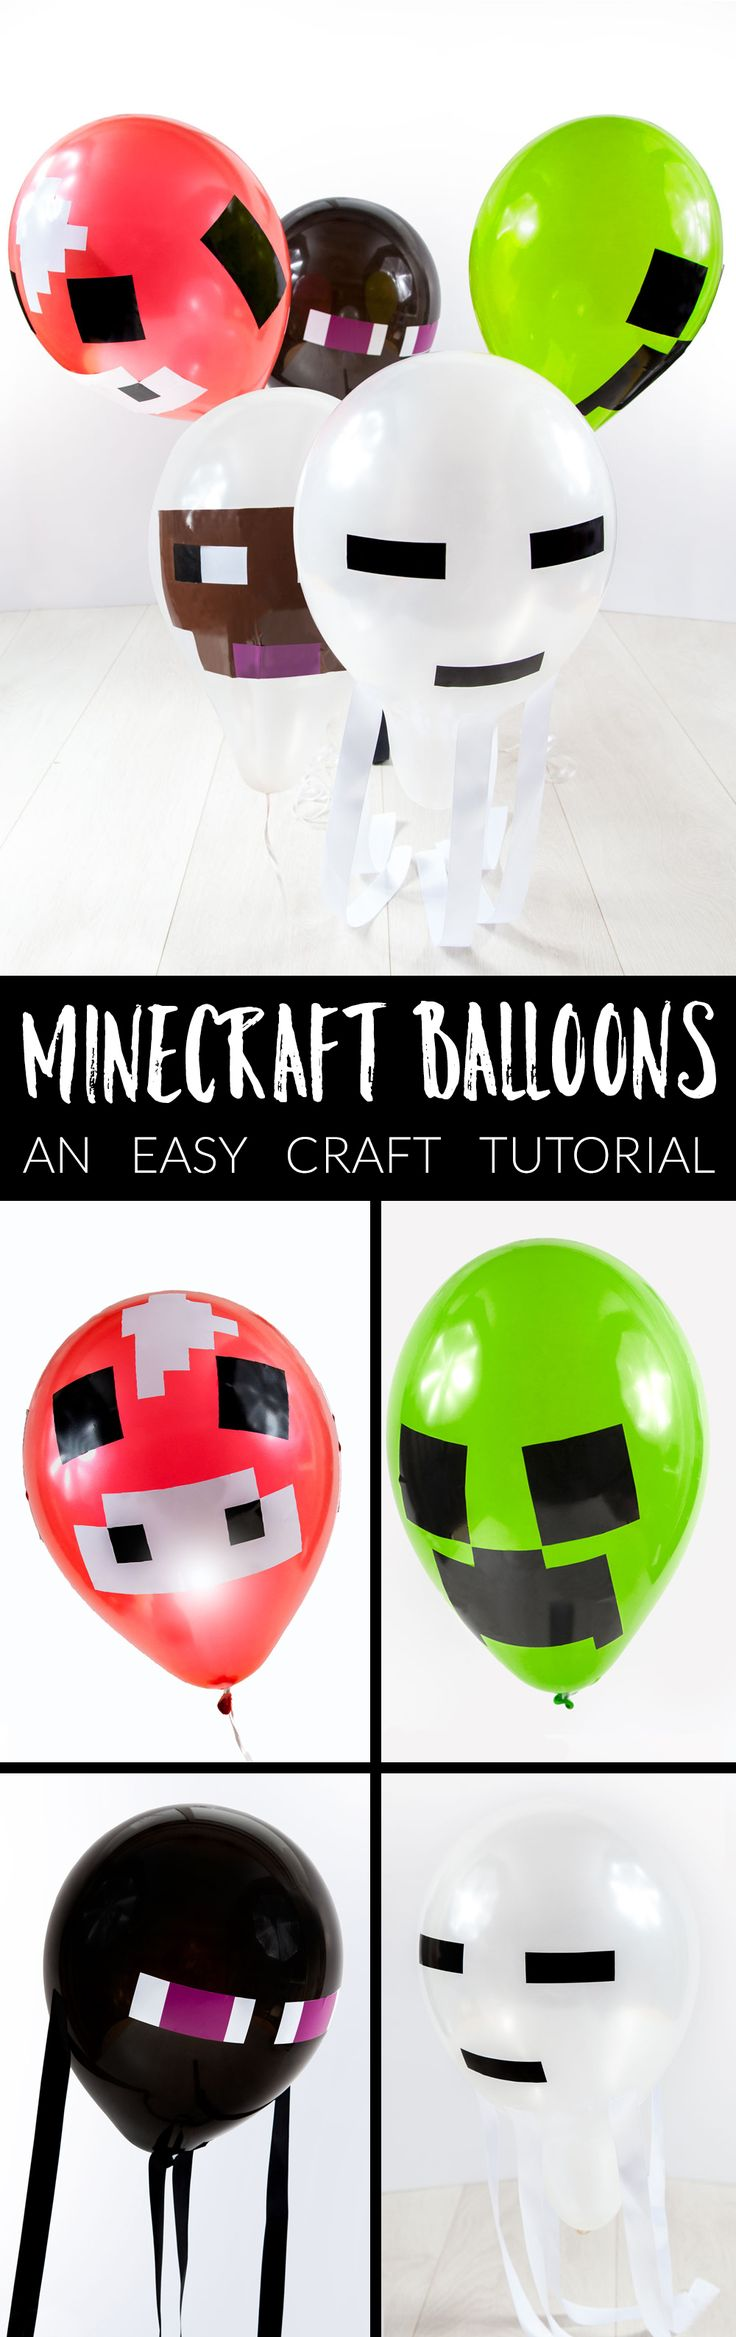 Minecraft Balão Craft Tutorial